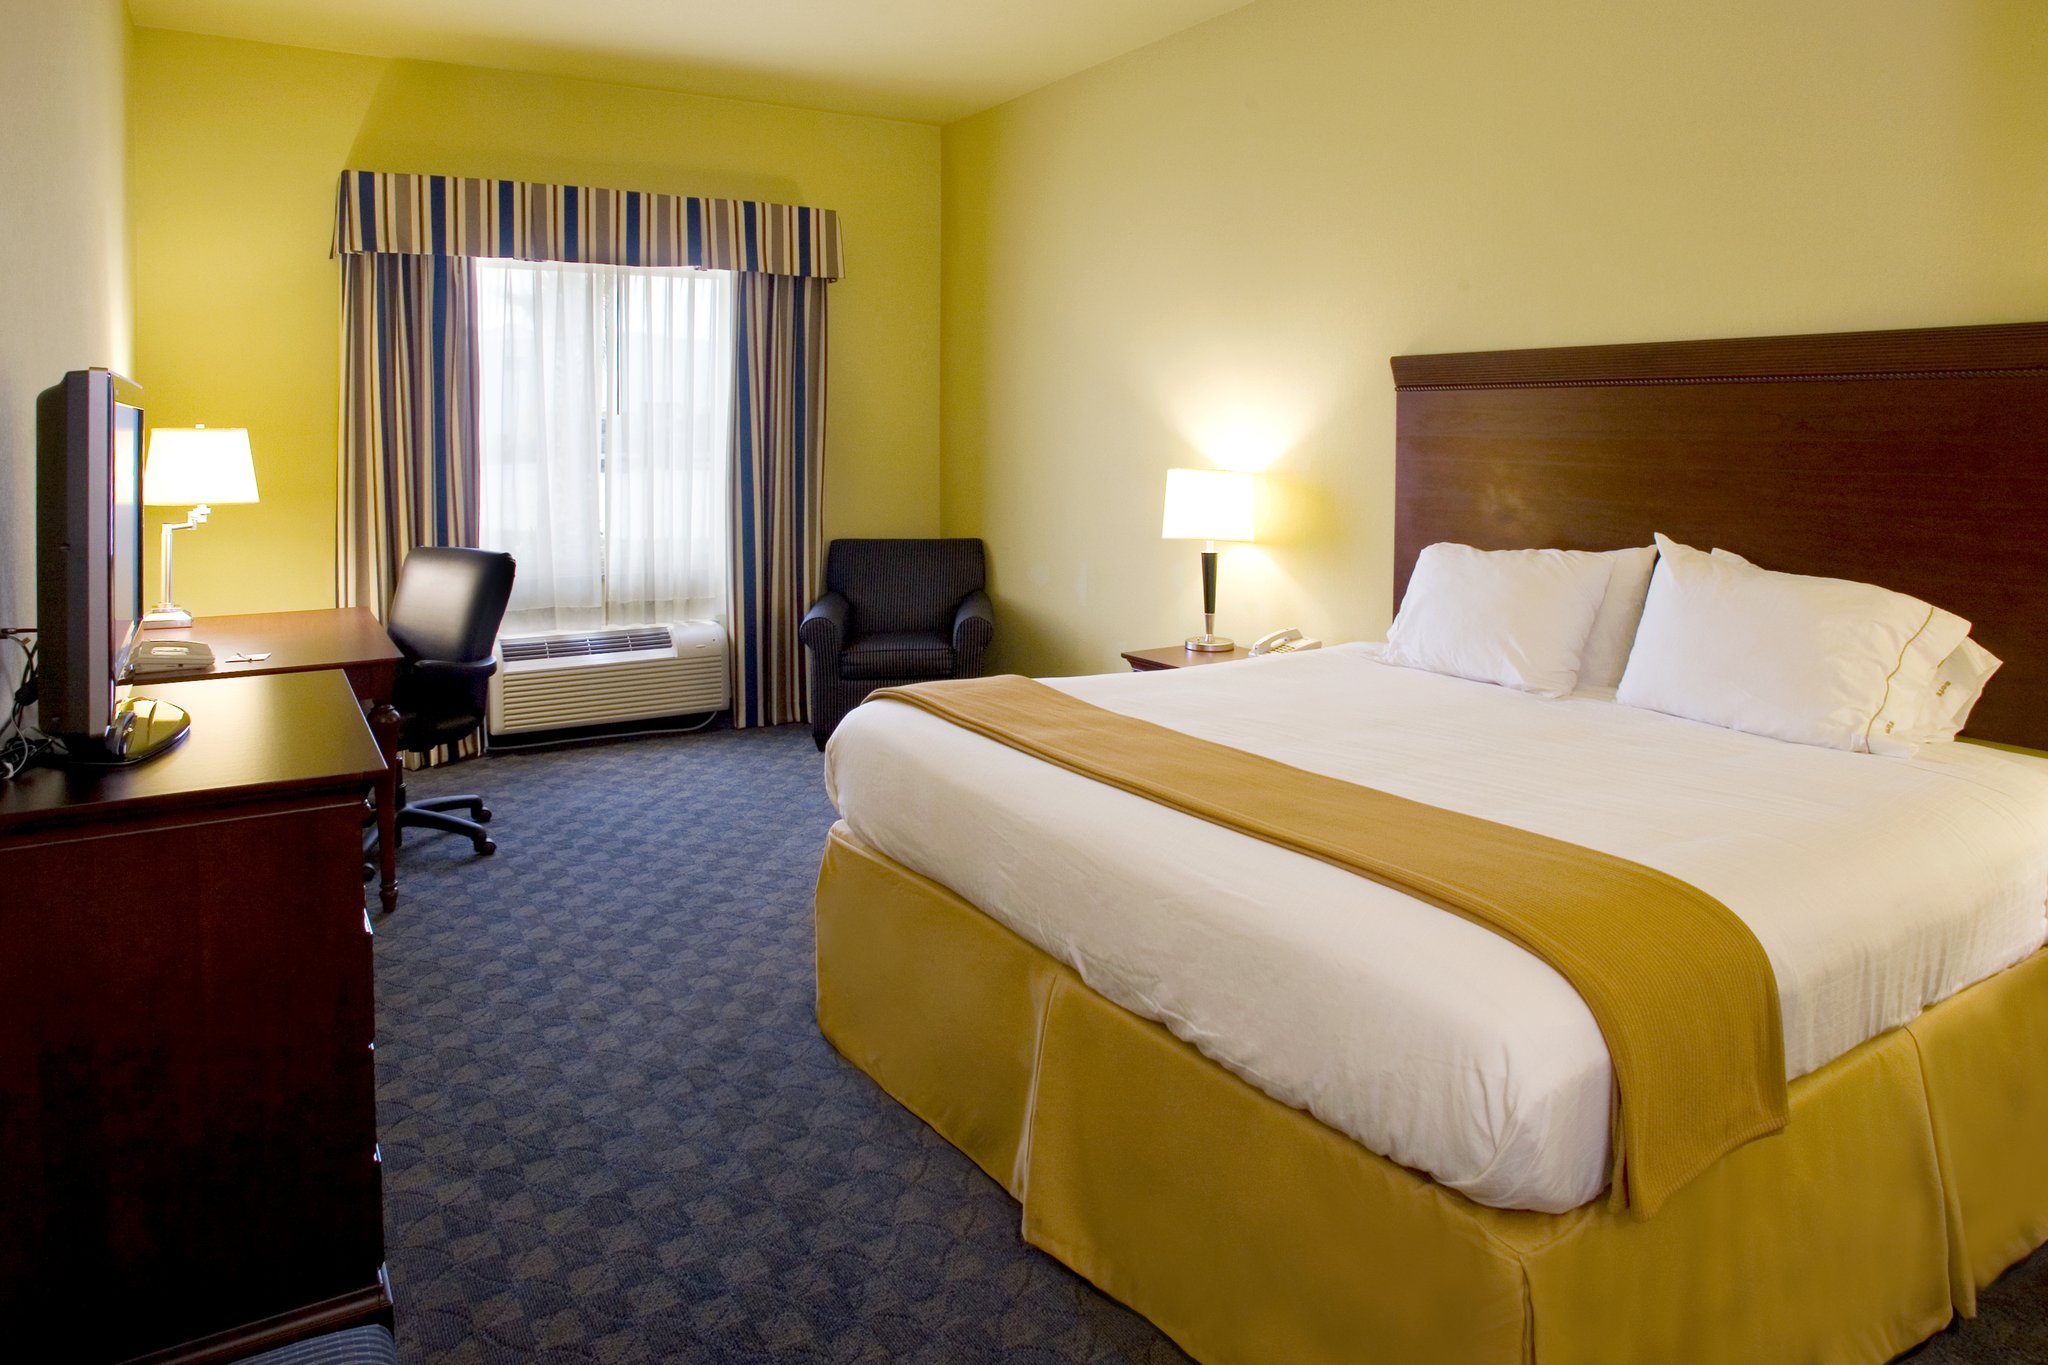 Holiday Inn Express Hotel & Suites Corpus Christi NW - Calallen